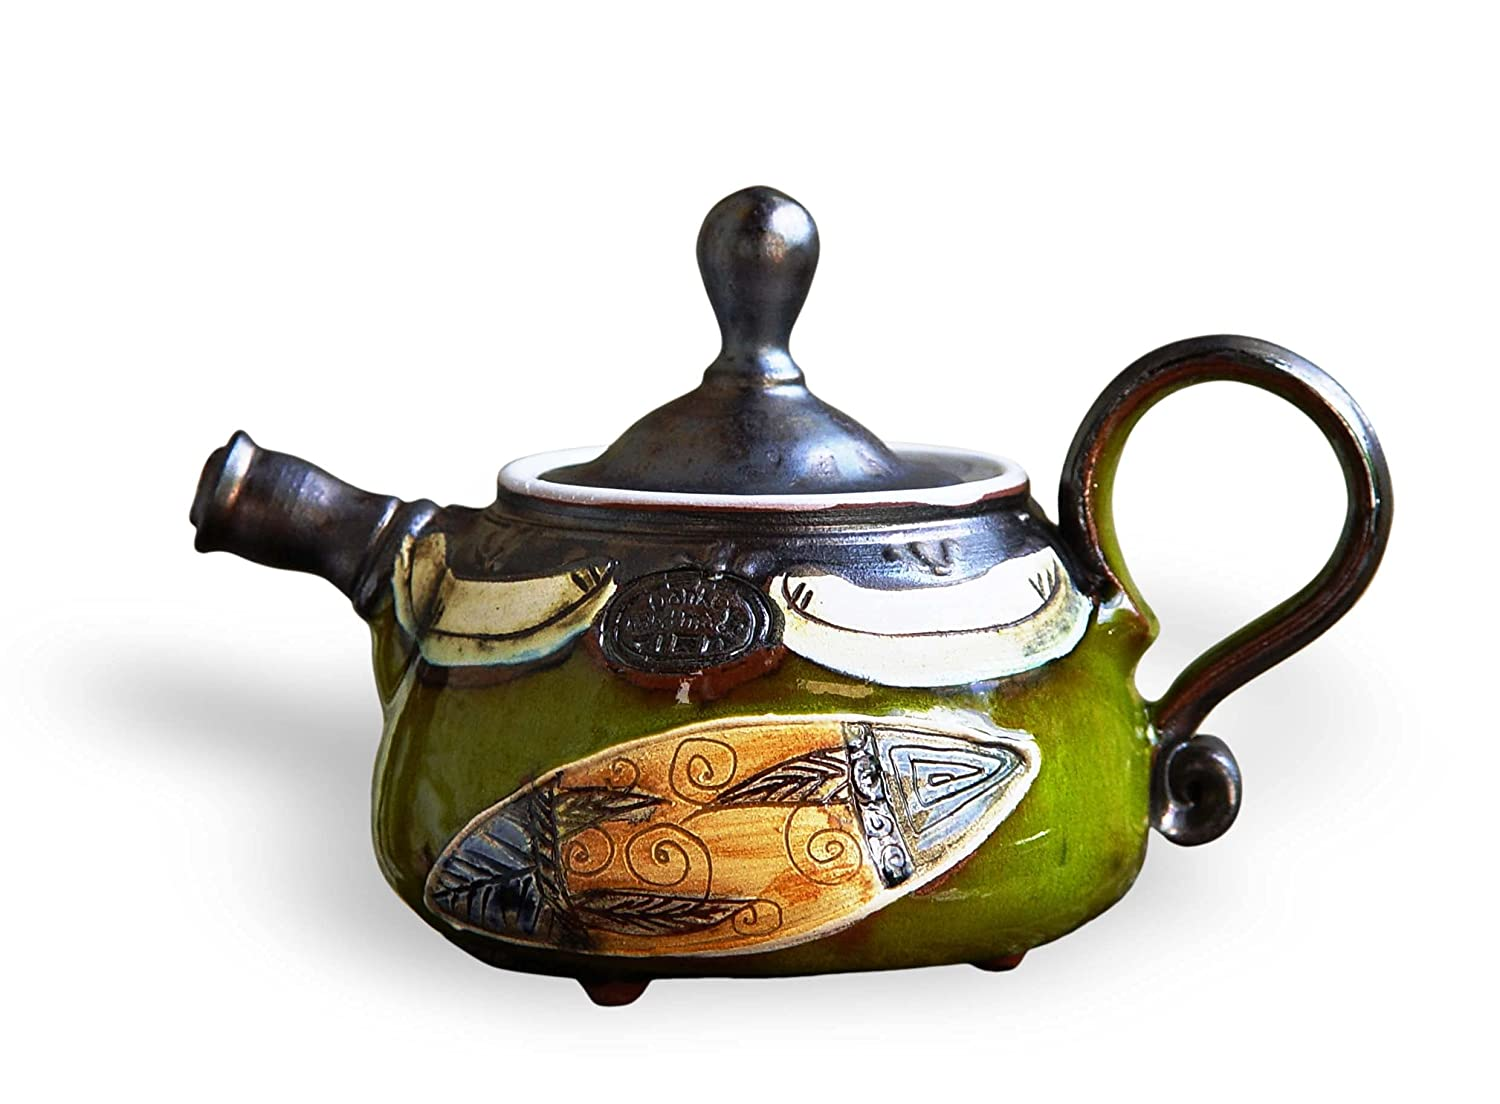 Small Wheel Thrown Pottery Japan Maker New Teapot. a Collectible teapot. Ceramic mart